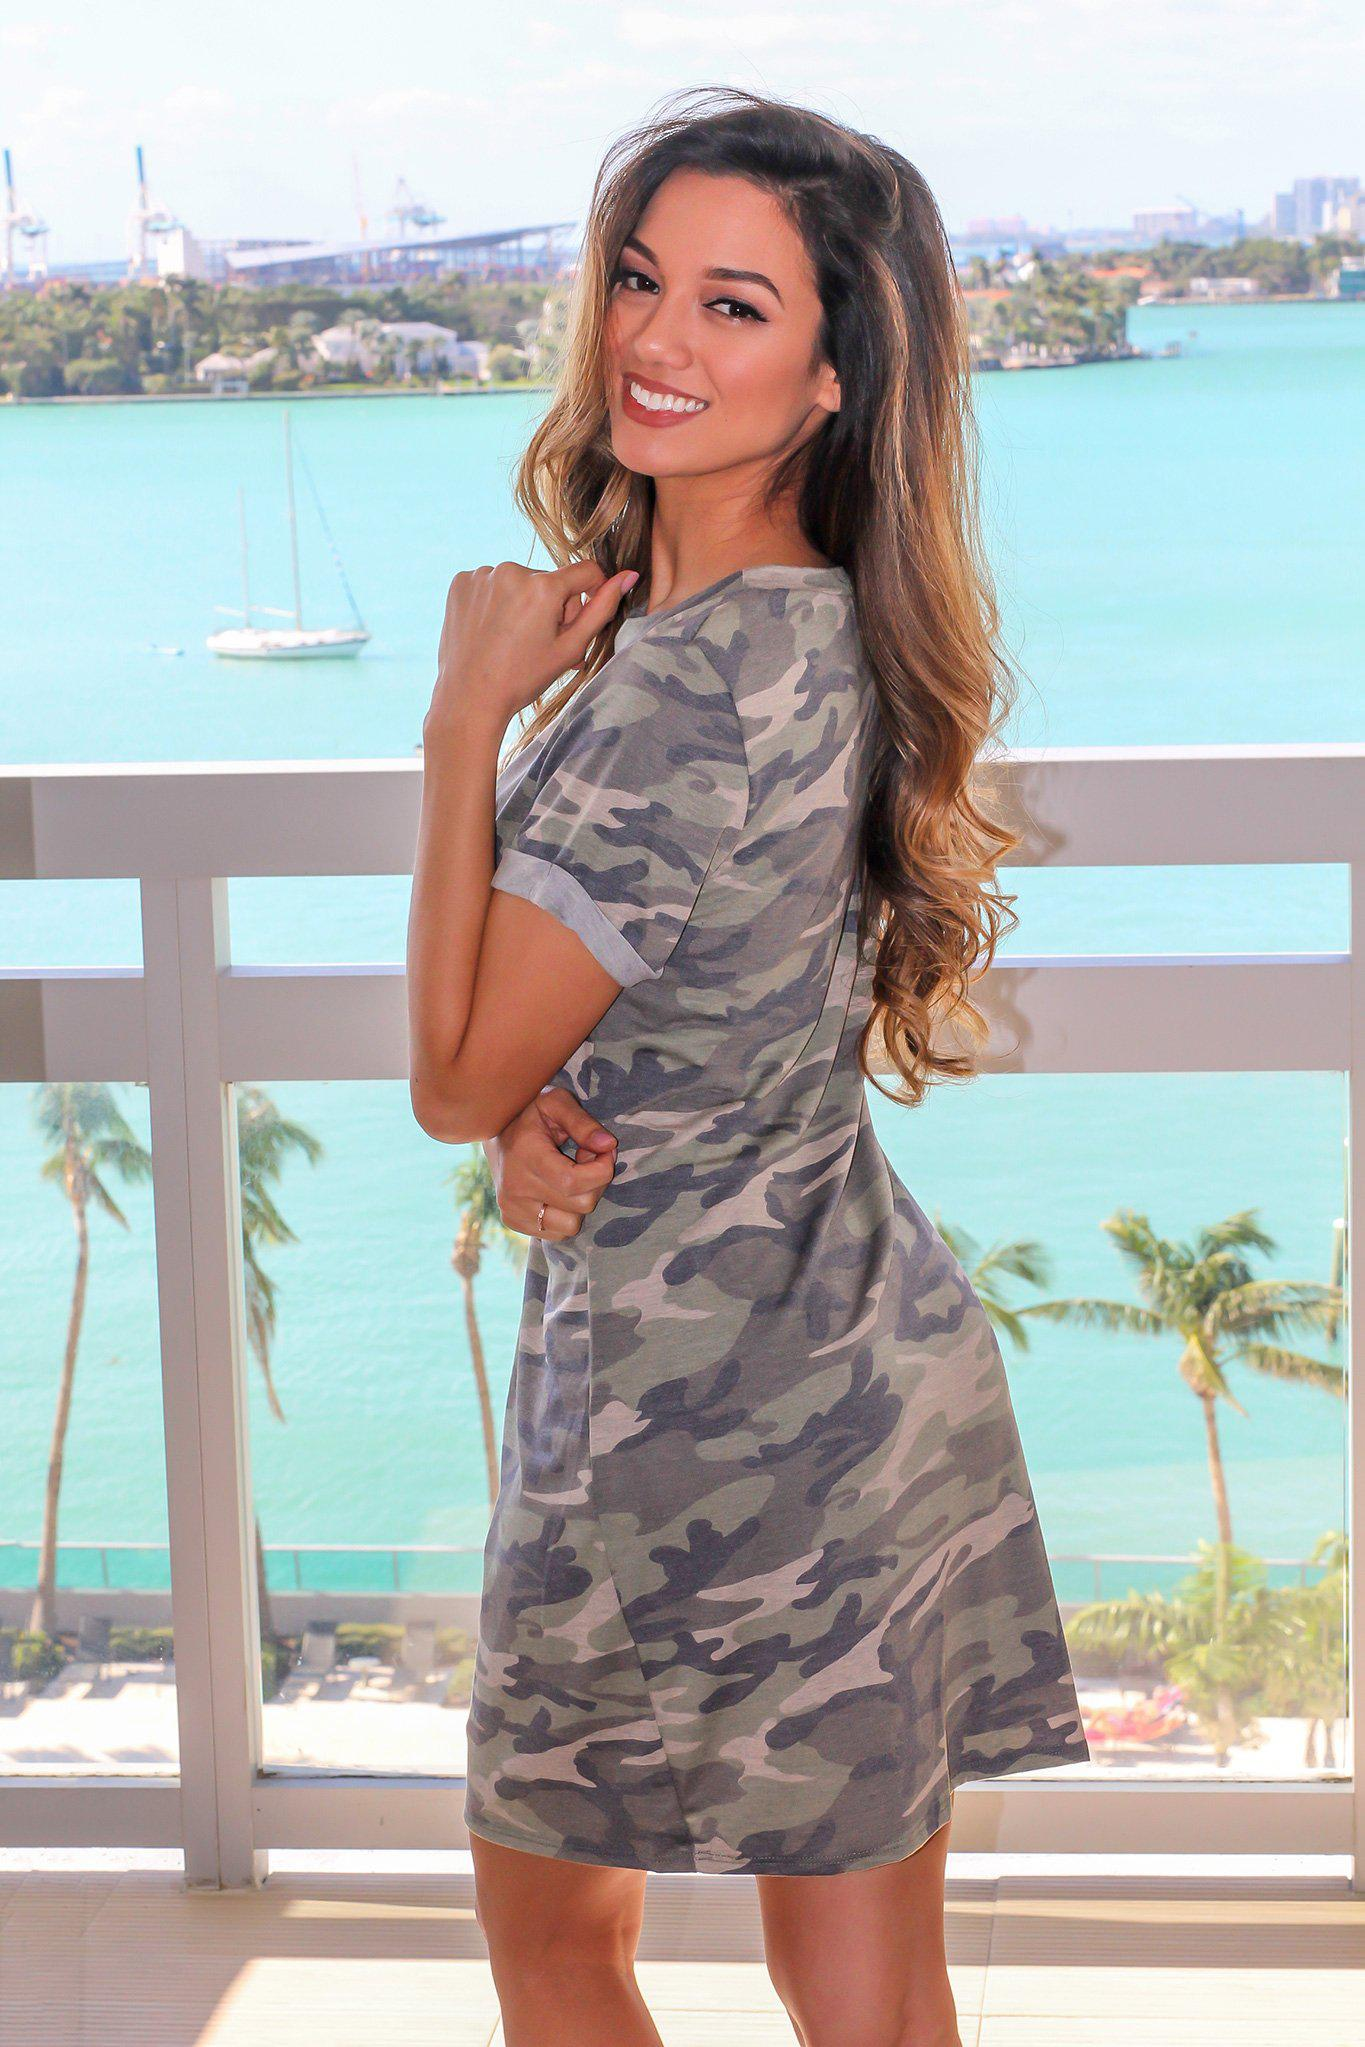 Camo Short Dress with Knot